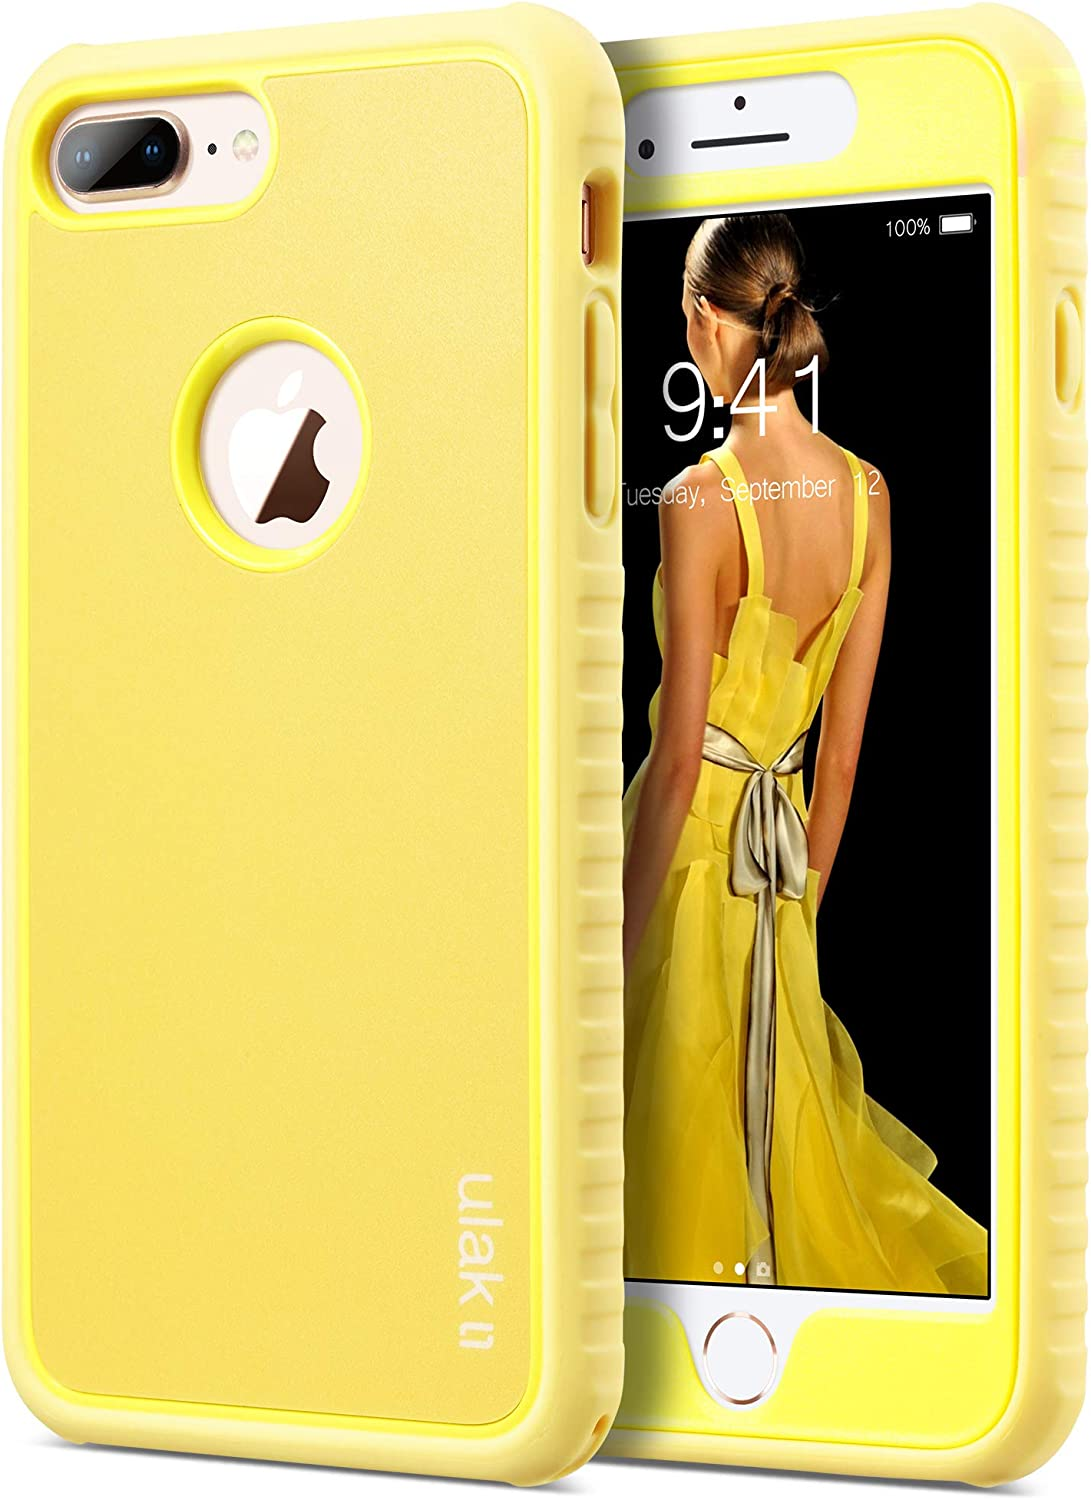 ULAK iPhone 8 Plus Case, Heavy Duty Shockproof TPU Bumper Case Durable Anti-Slip Lightweight Front and Back Hard Protective Cover for iPhone 8 Plus 5.5 inch Larger Screen Size,Yellow